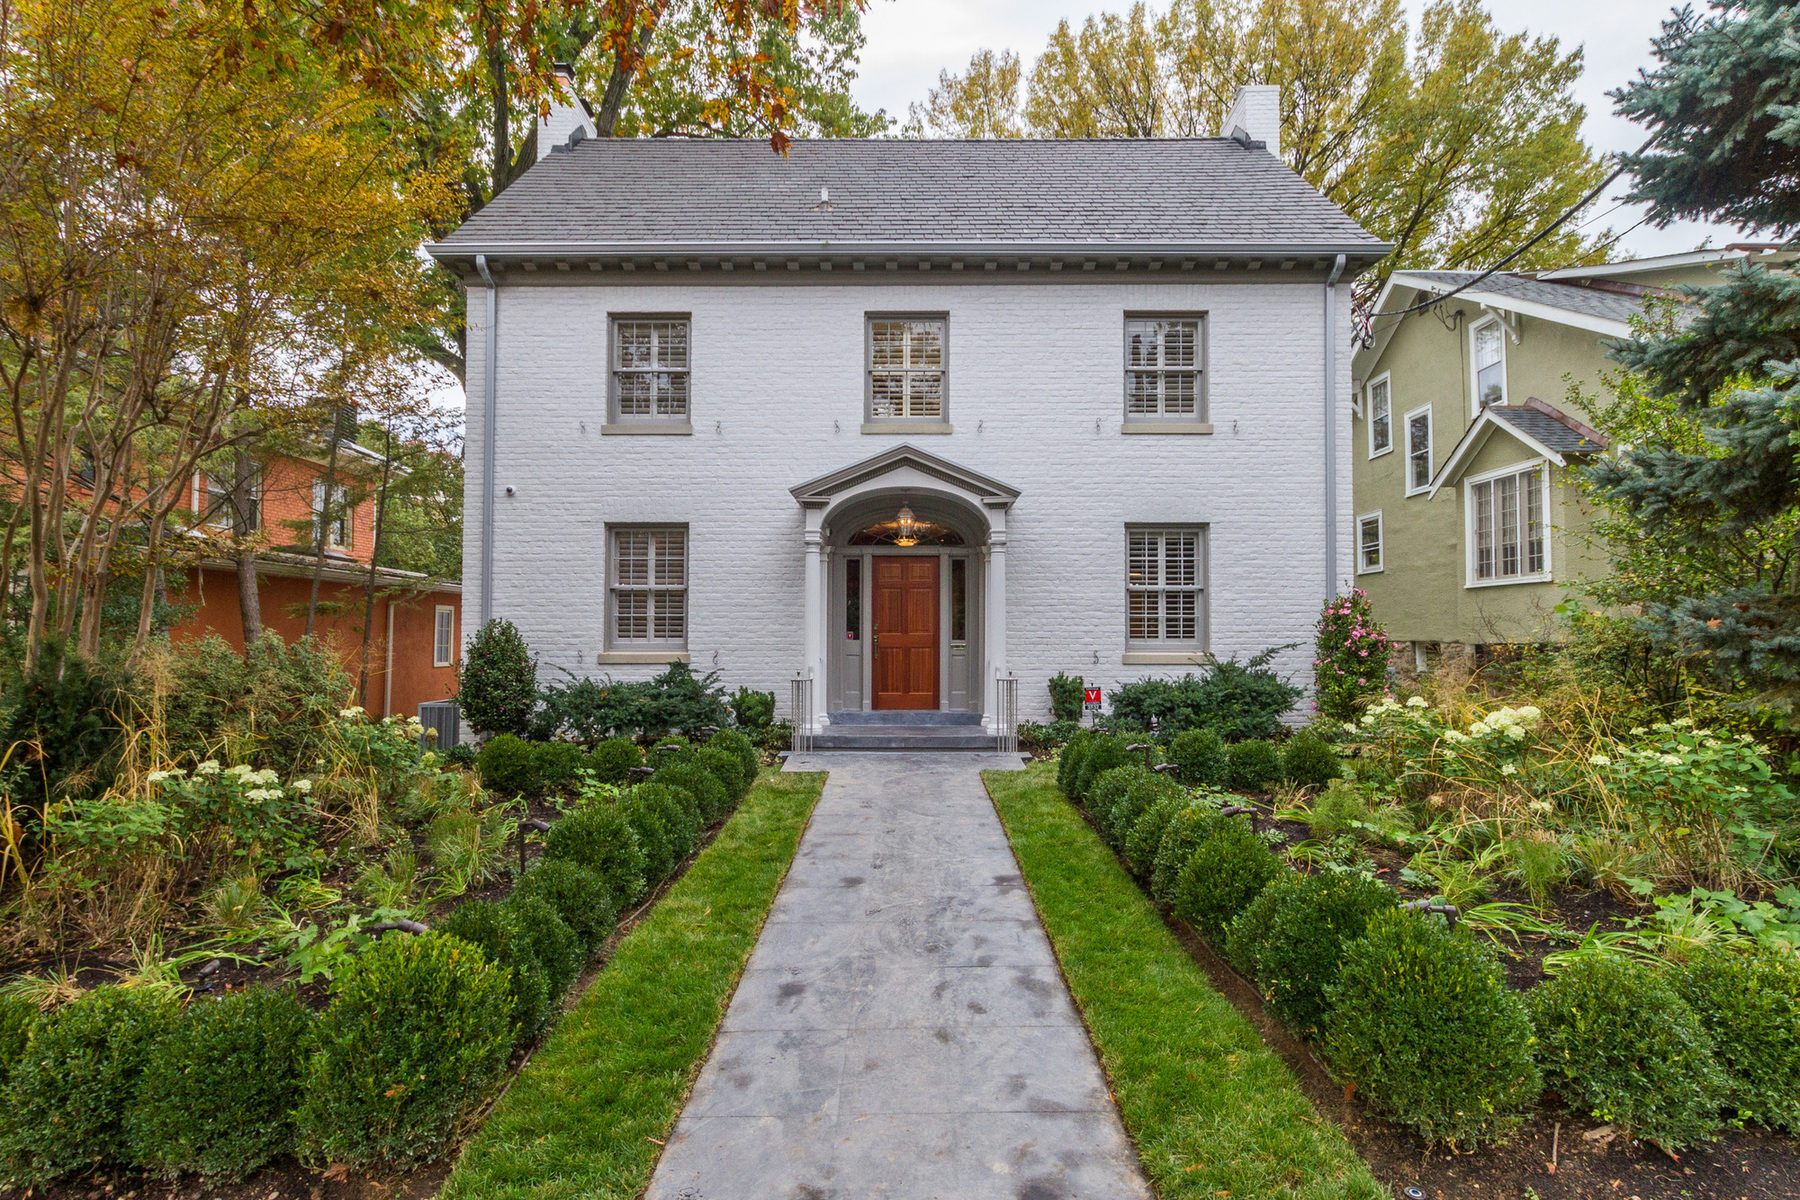 Single Family Home for Sale at 3532 Edmunds Street NW, Washington Washington, District Of Columbia 20007 United States